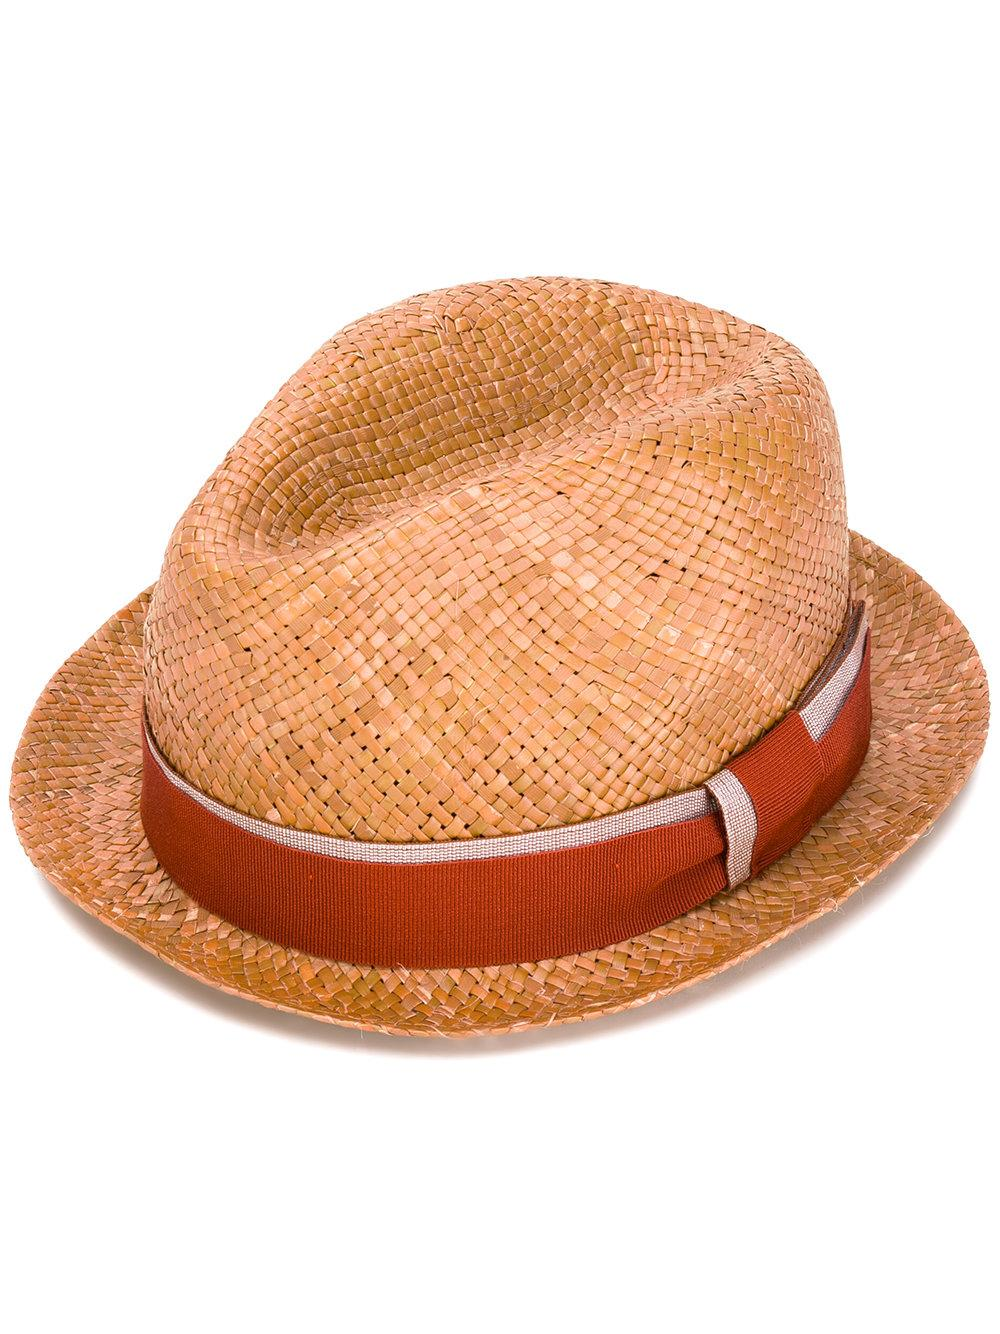 6a0cf0815ea Lyst - Paul Smith Ribbon Band Fedora Hat in Brown for Men